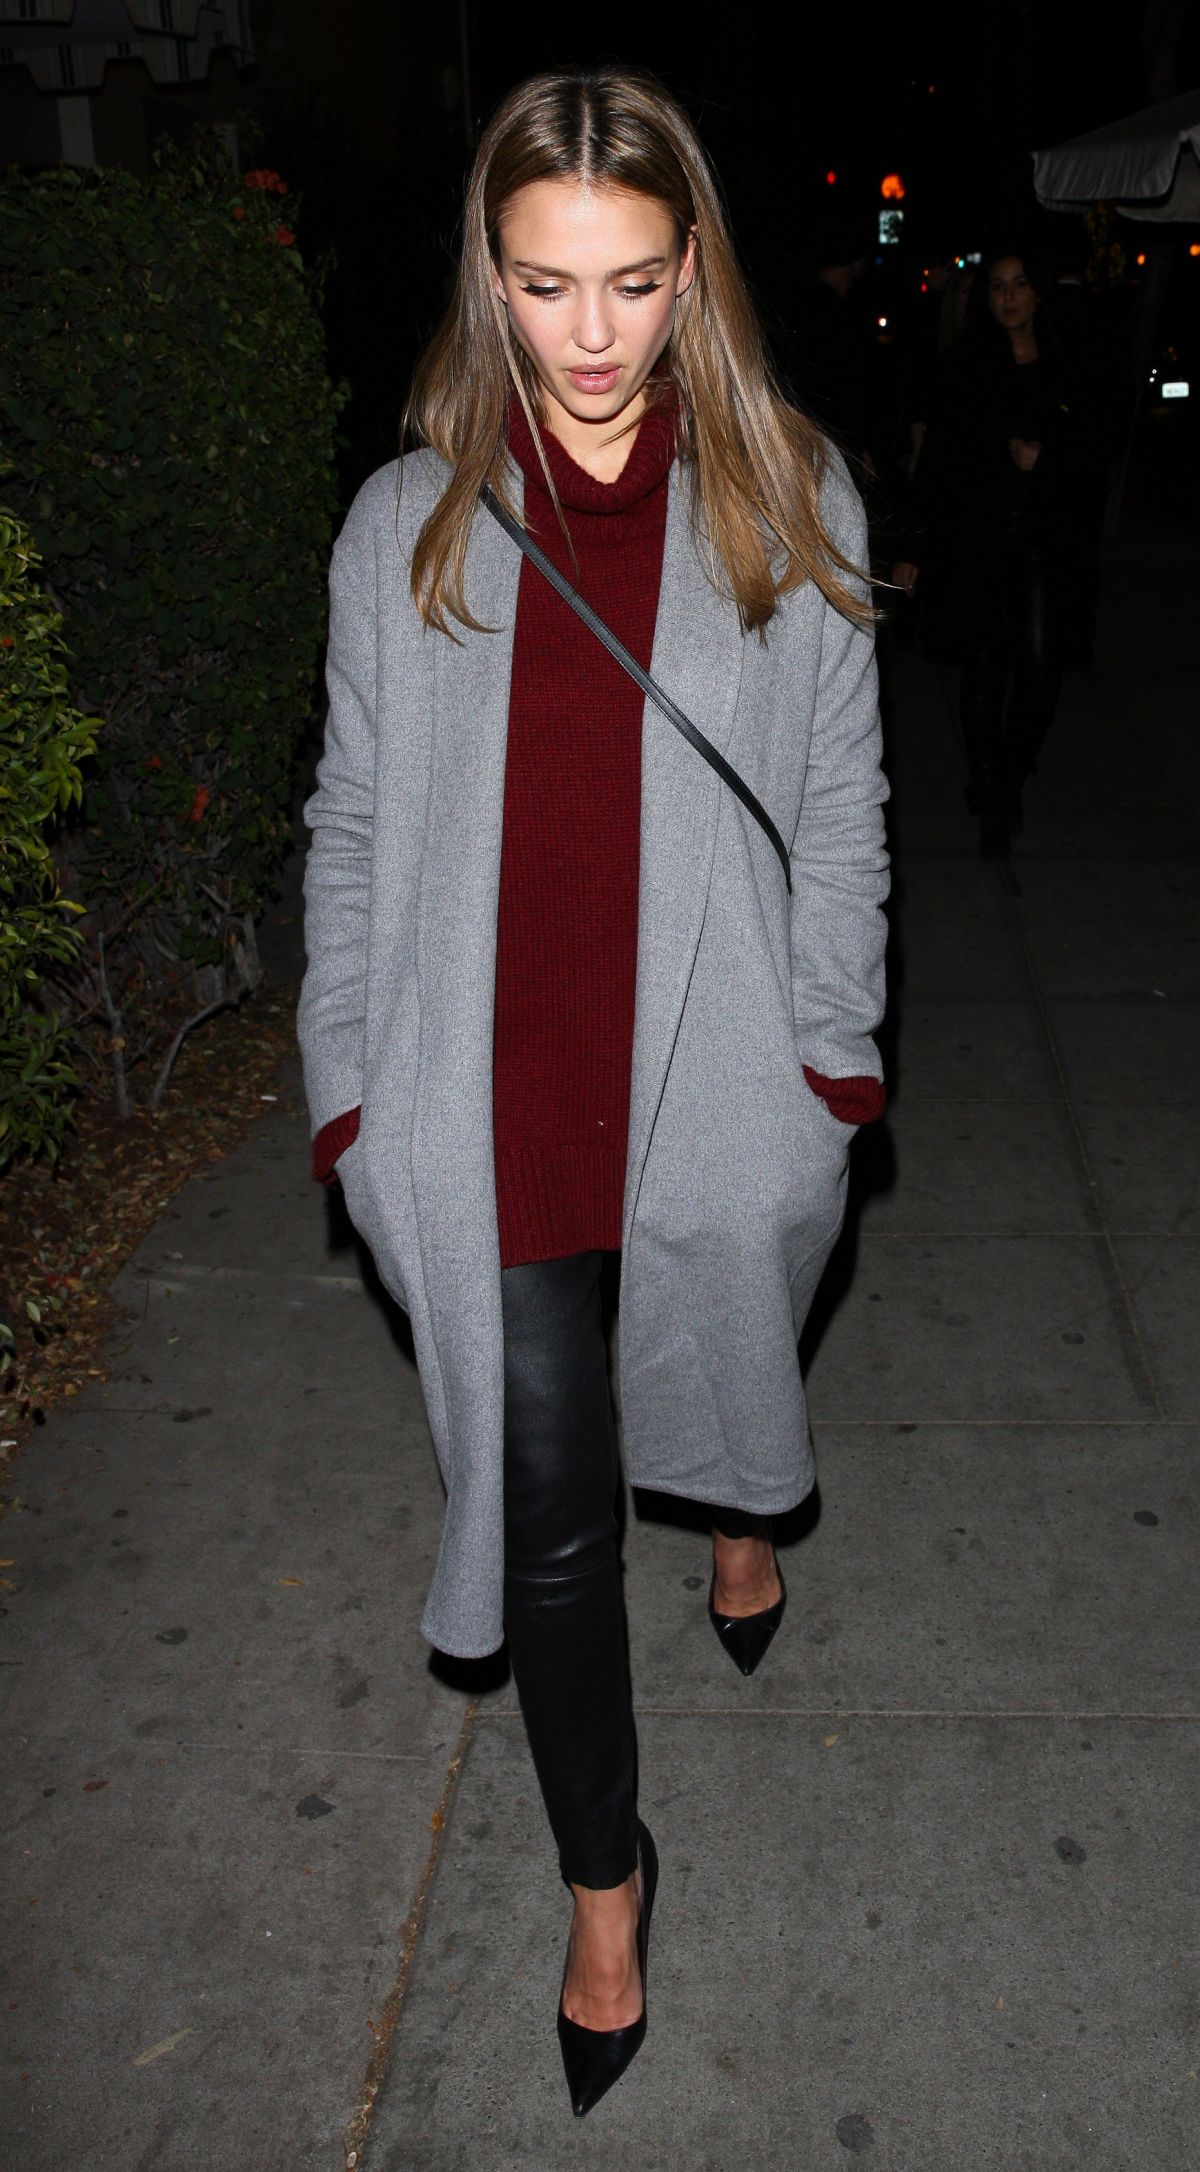 JESSICA ALBA at Delilah Club in West Hollywood 11/18/2016